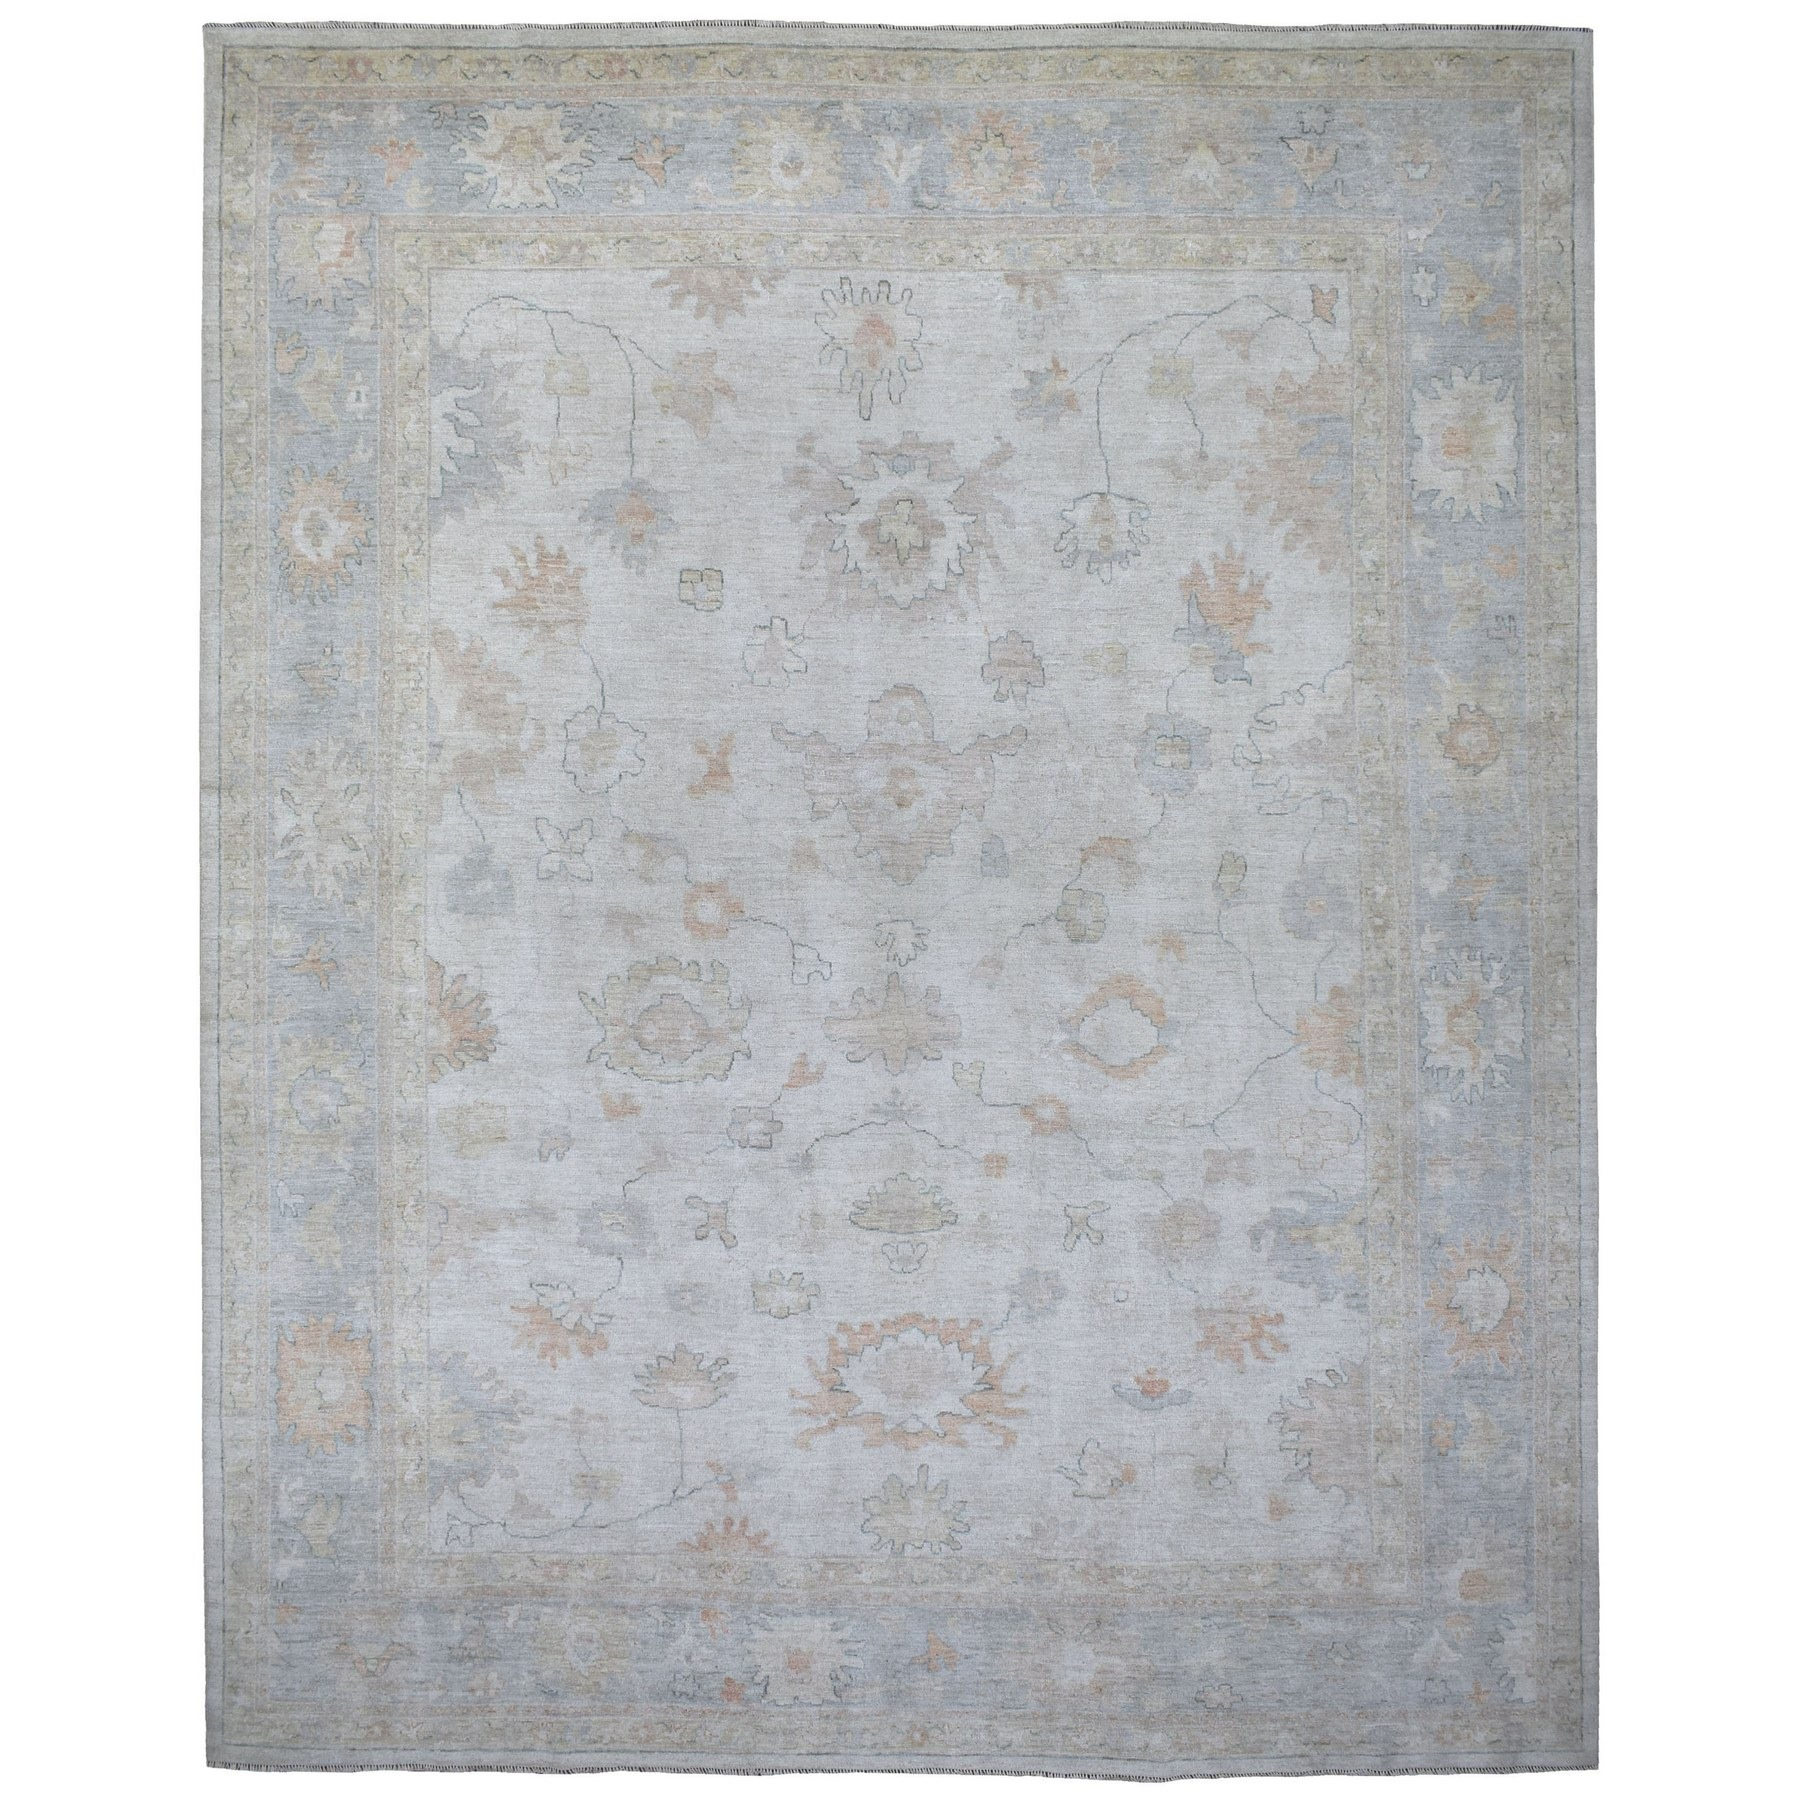 Oushak And Peshawar Rugs LUV608994